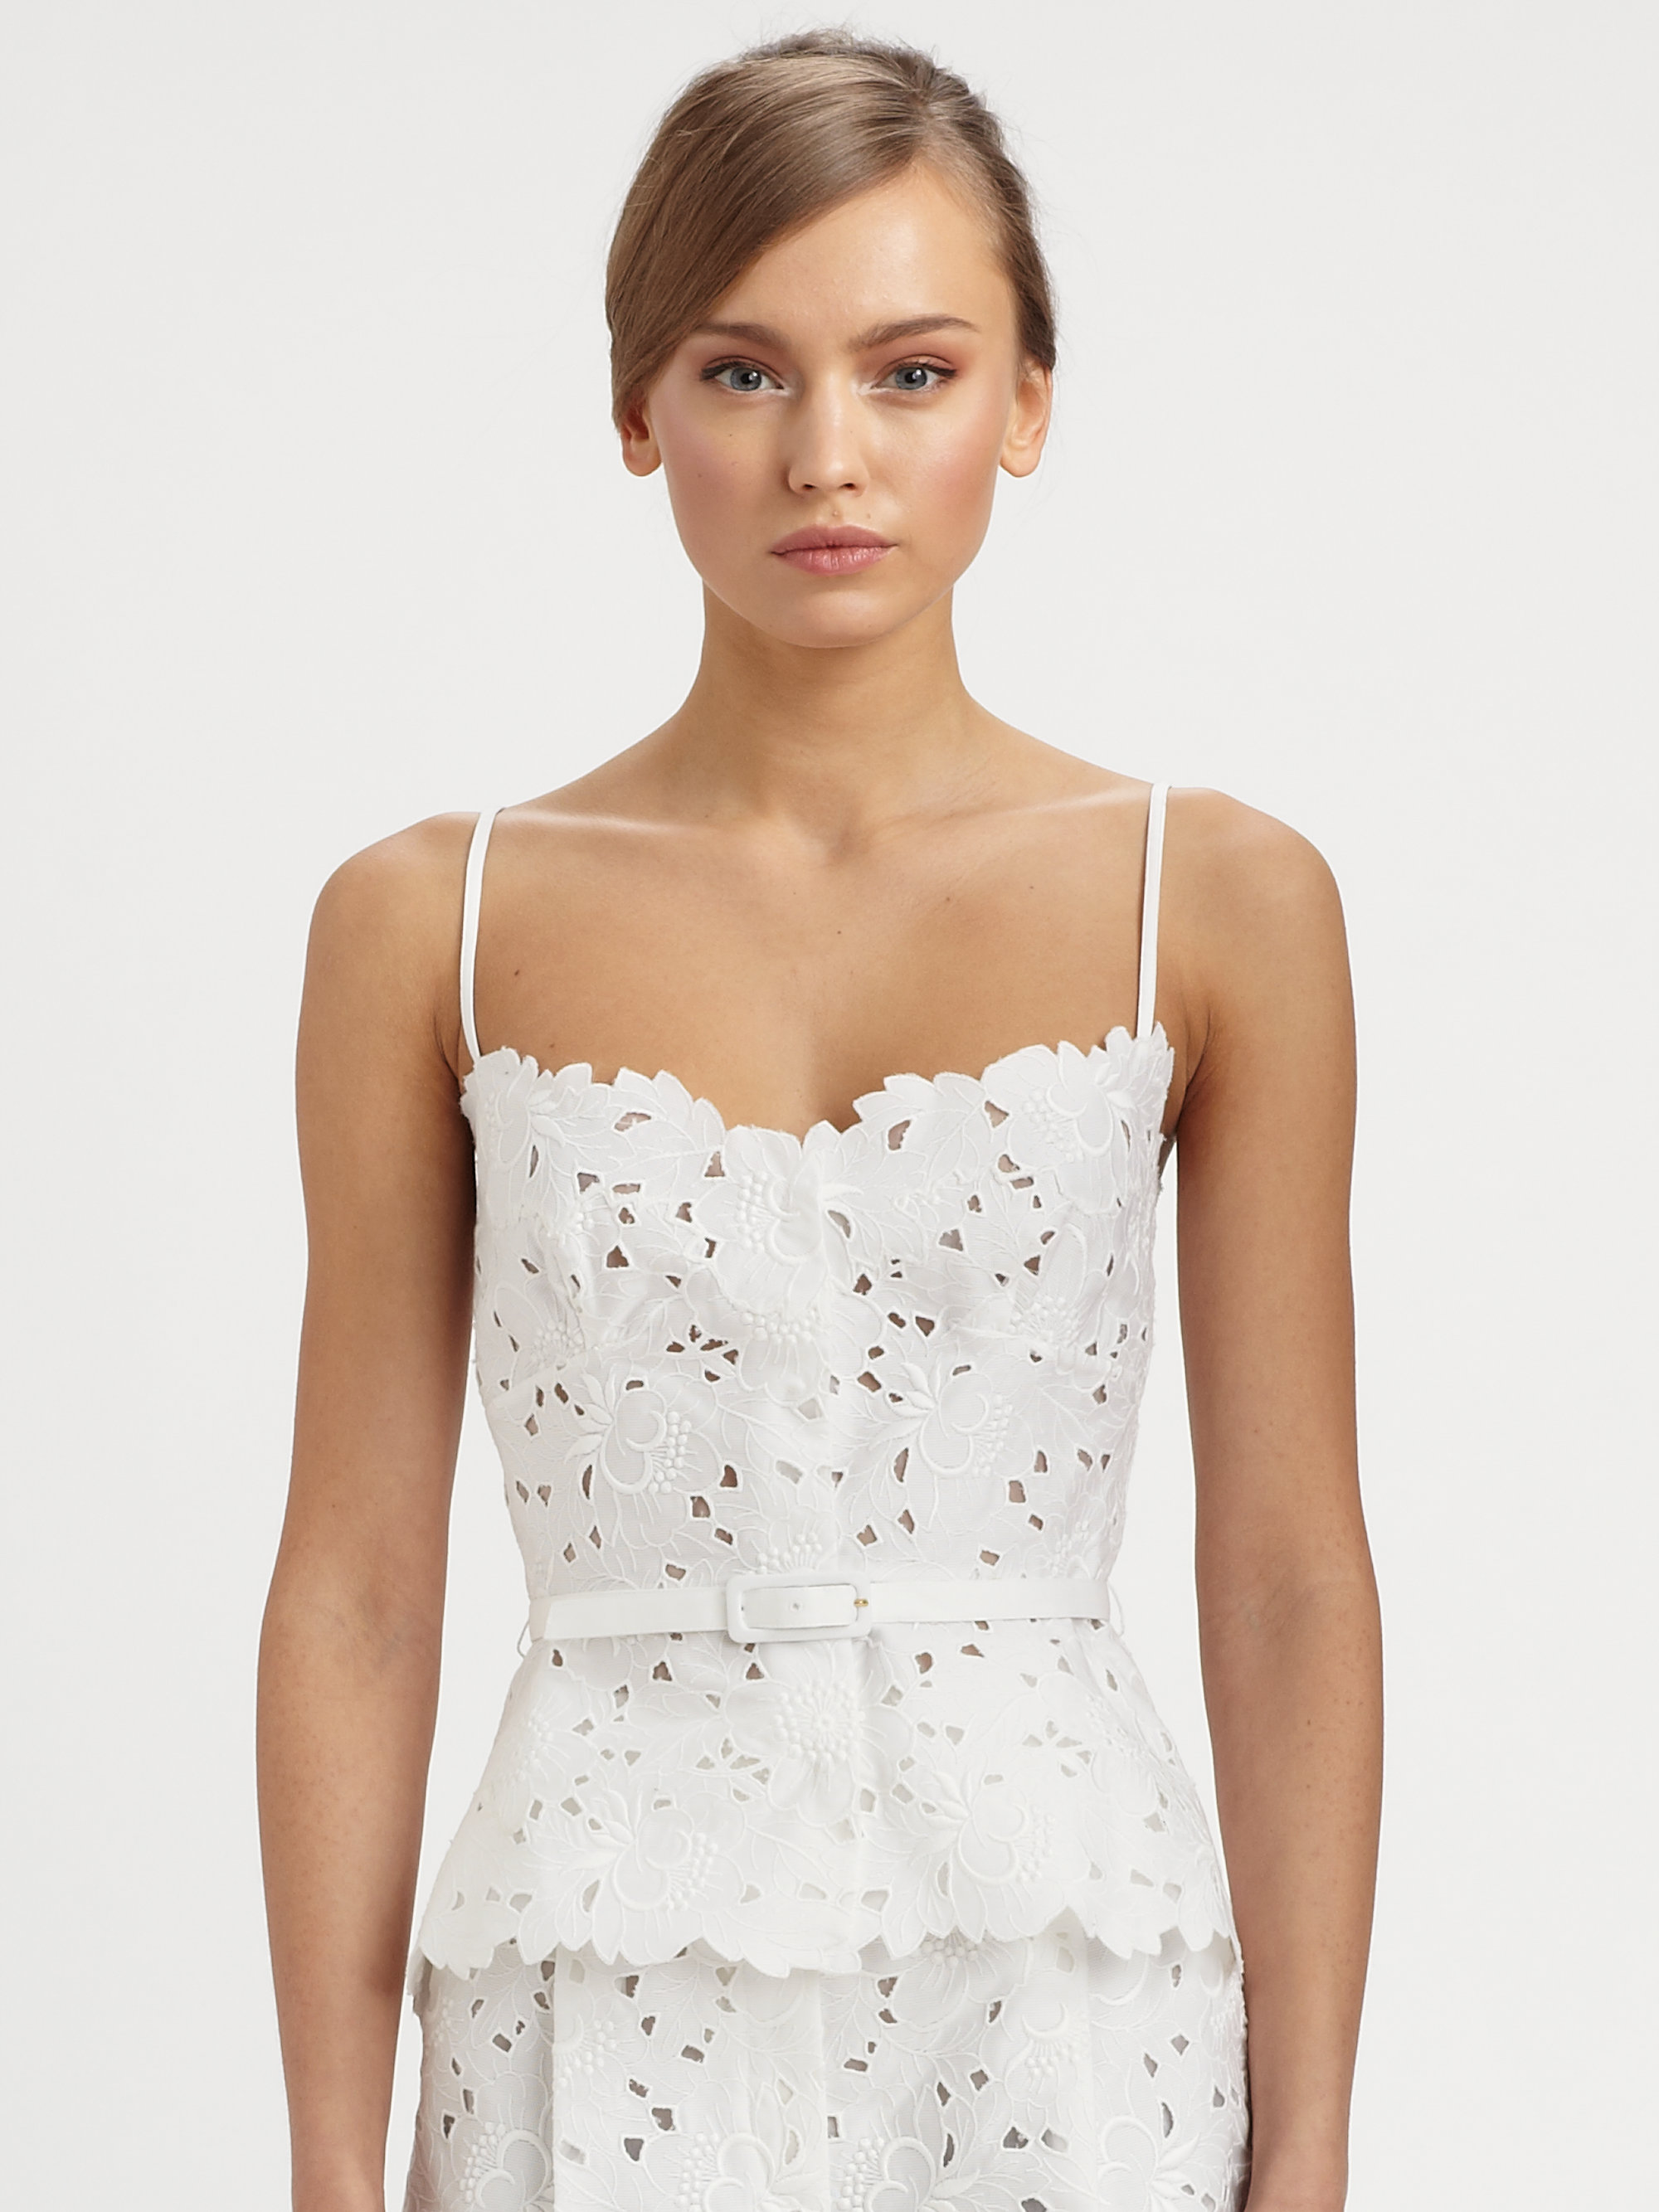 Find great deals on eBay for white lace camisole top. Shop with confidence.